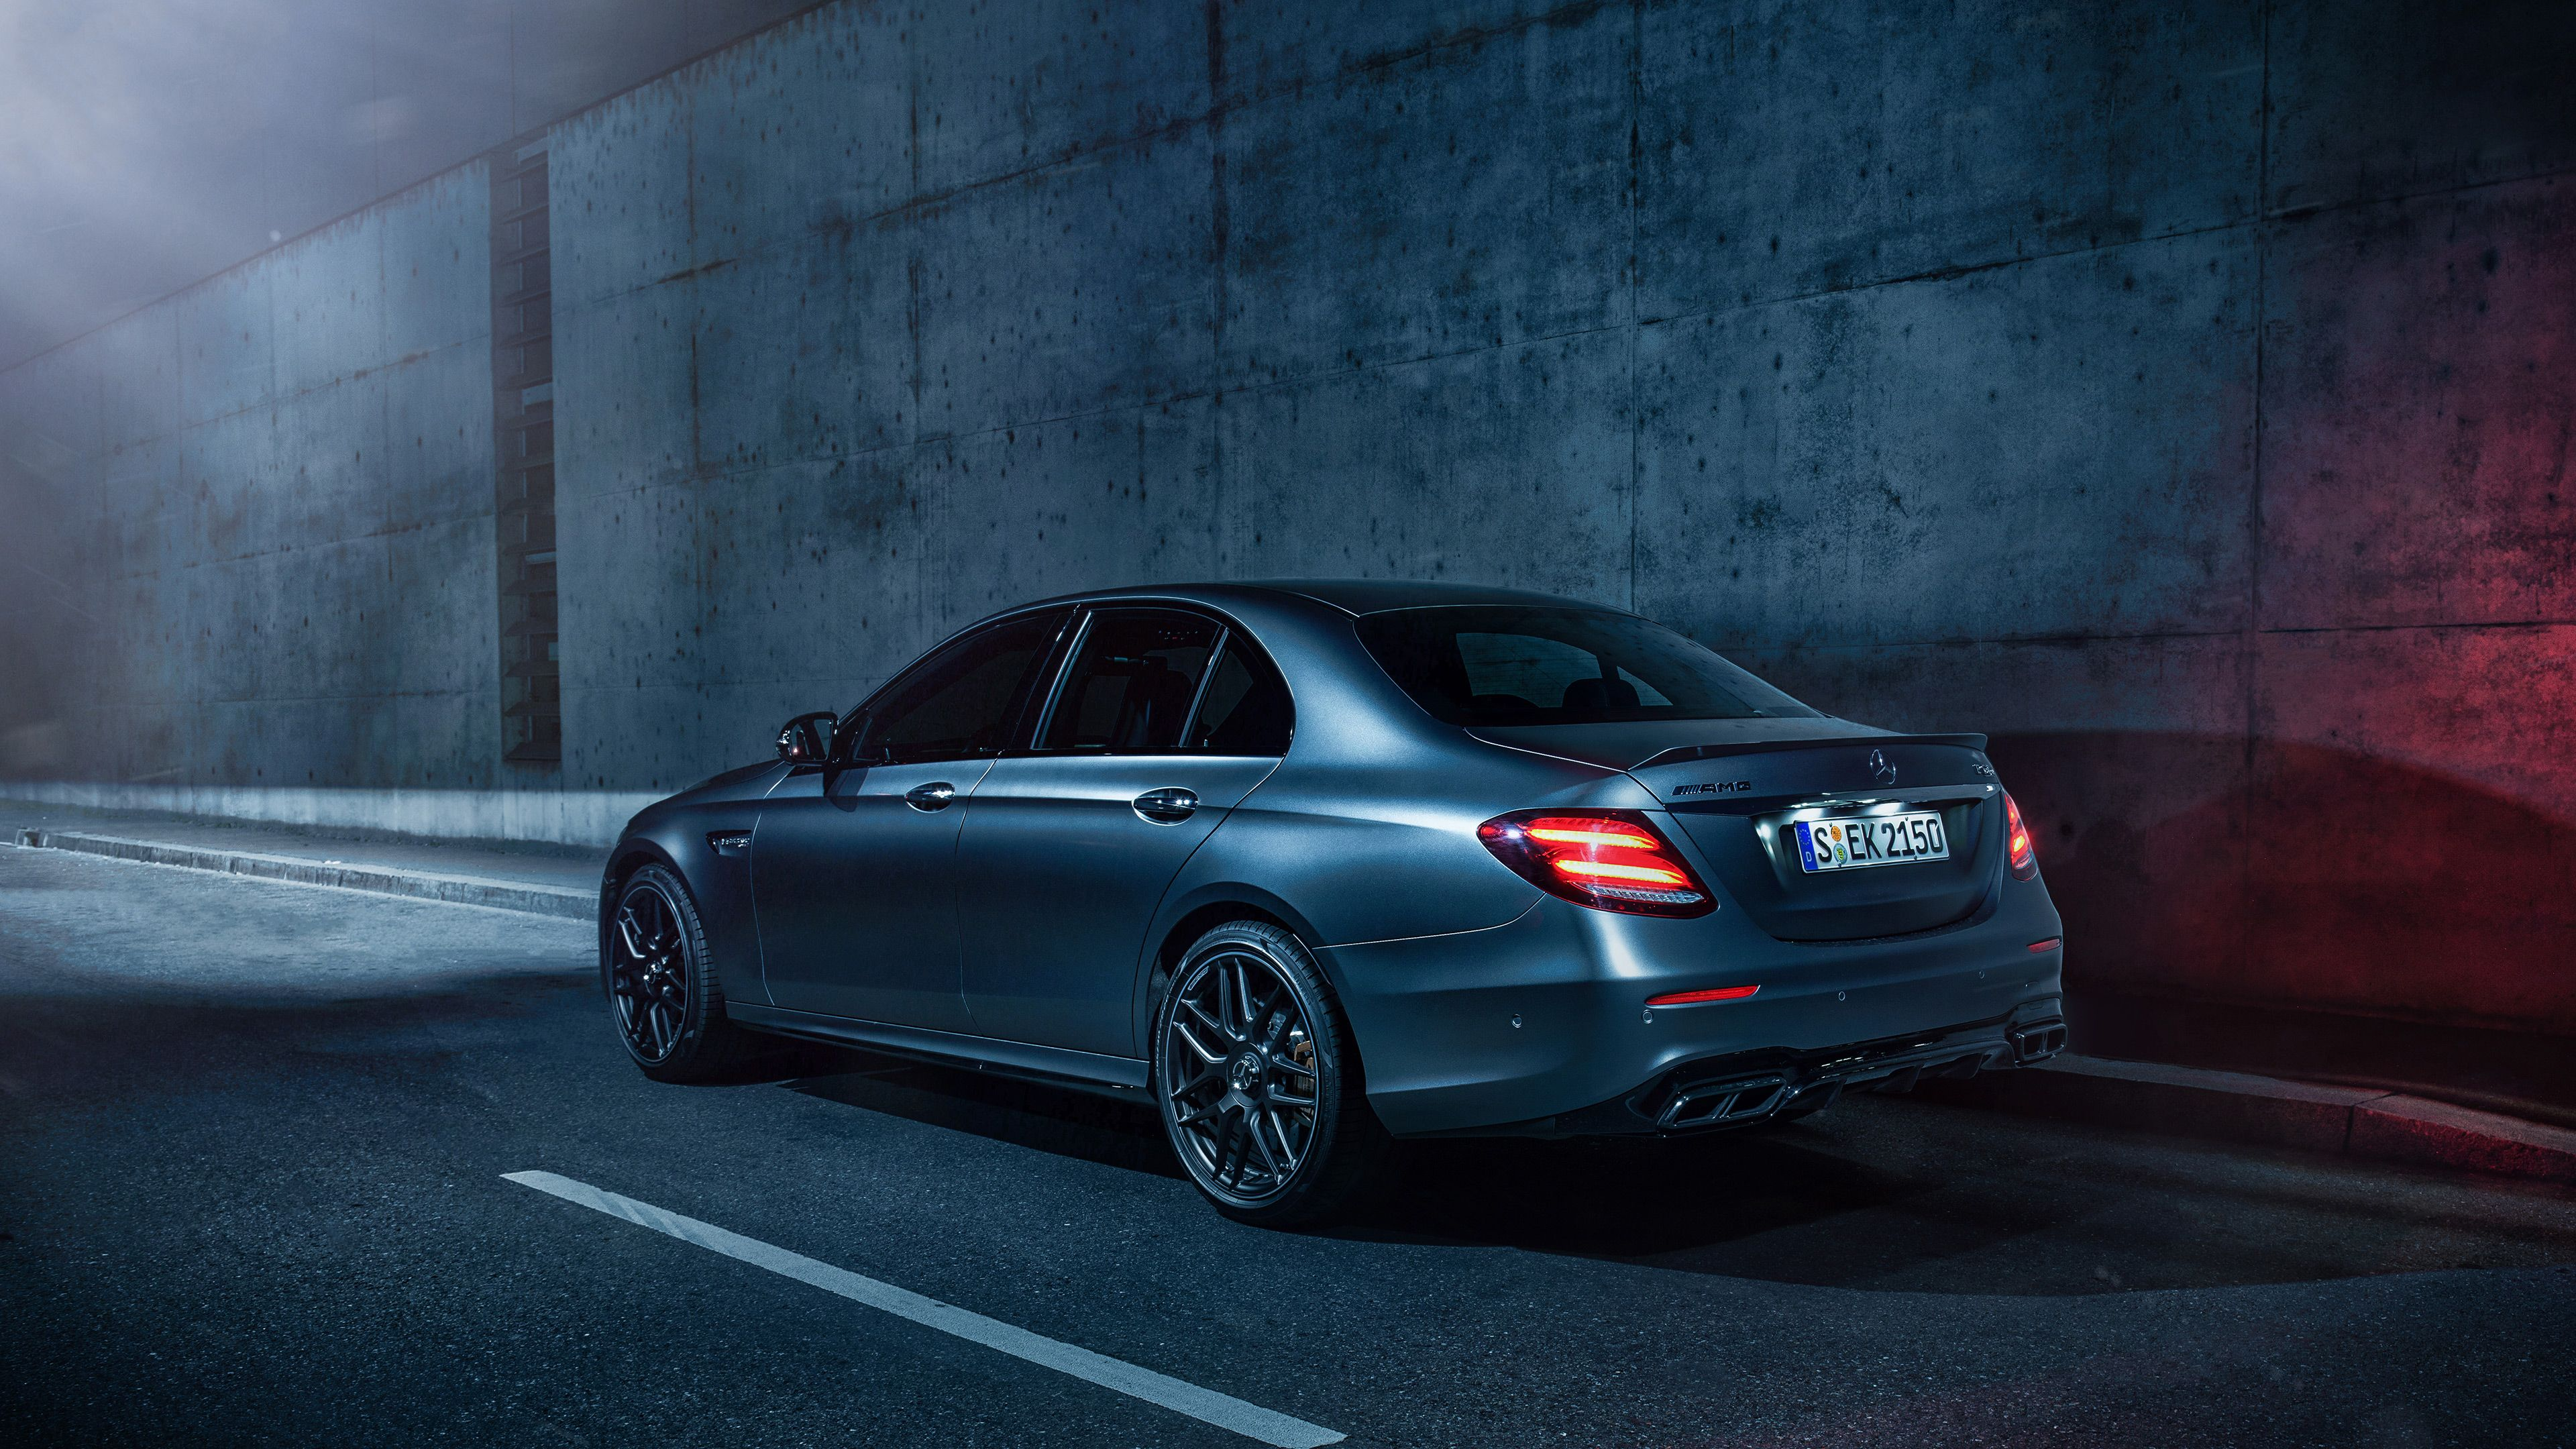 AMG E63 Wallpapers - Wallpaper Cave